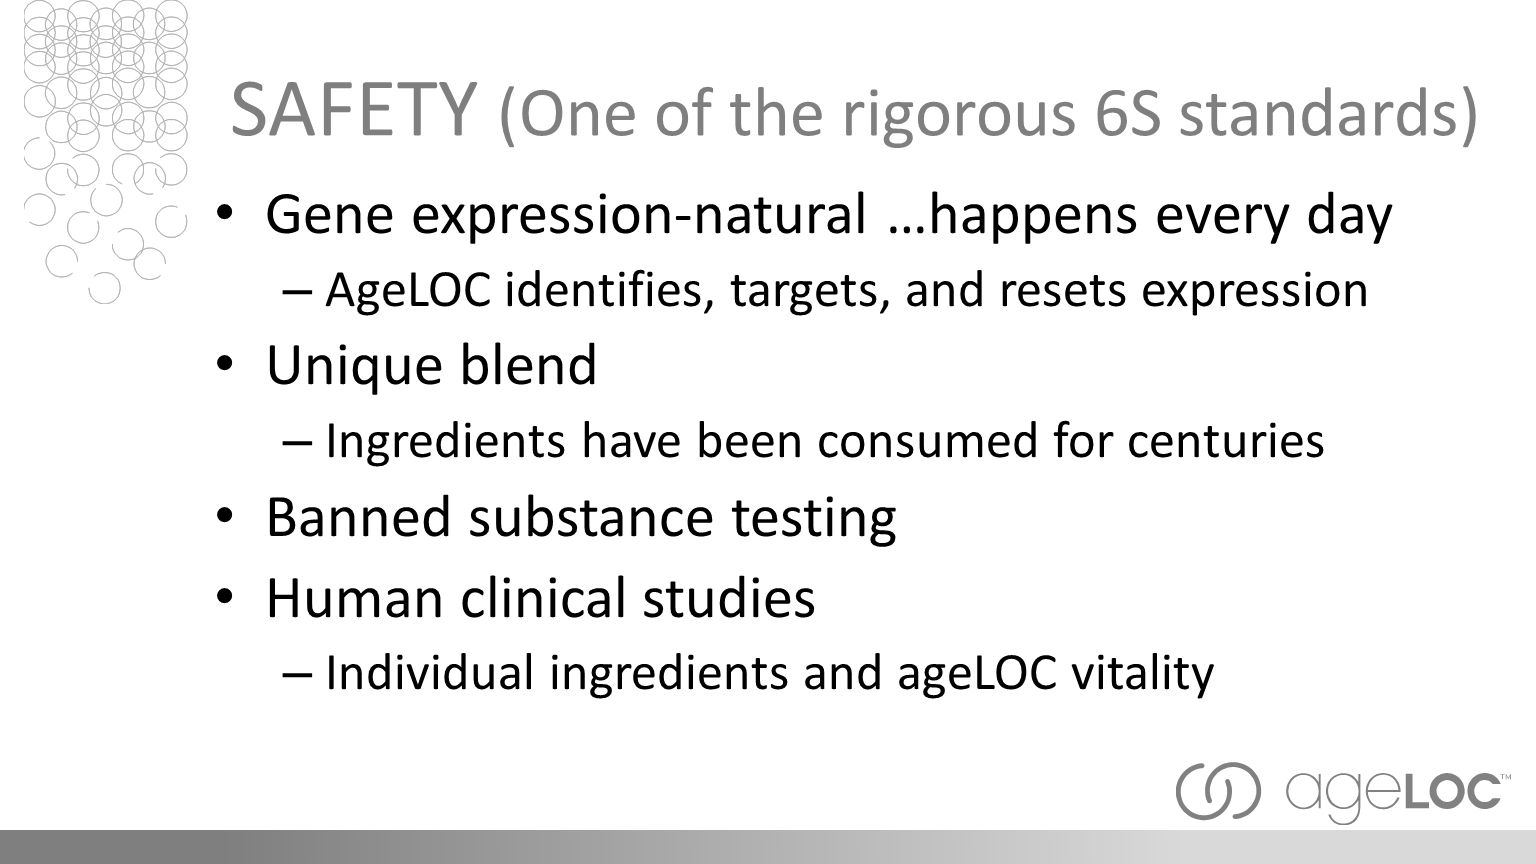 SAFETY (One of the rigorous 6S standards) Gene expression-natural …happens every day – AgeLOC identifies, targets, and resets expression Unique blend – Ingredients have been consumed for centuries Banned substance testing Human clinical studies – Individual ingredients and ageLOC vitality